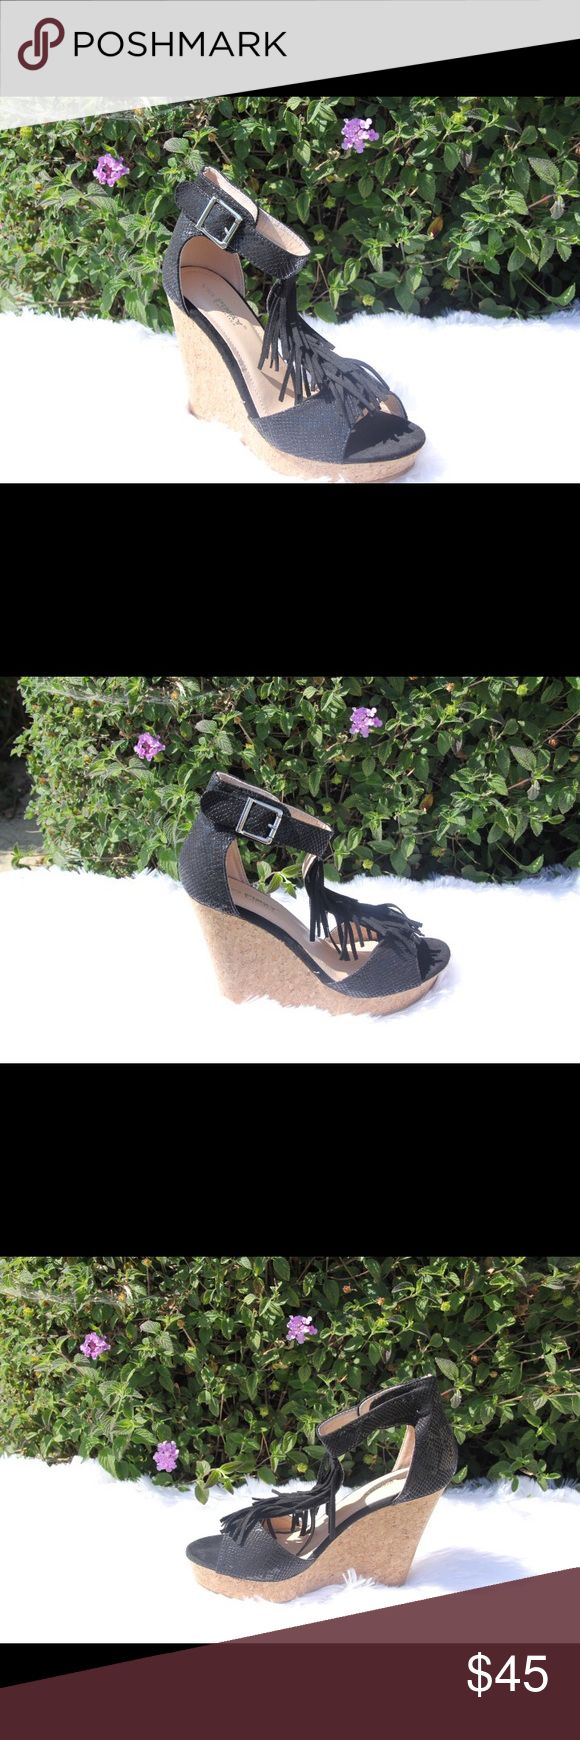 Ladies high top ankle buckle snake skin wedge.blk Very nice wedge sandals for ladies, snake skin black color, high top with ankle buckle, 4 inches heels, front band fringe, man made material, brand new in box. True to size. Tan color available in different ladies sting. NO TRADES SHOEROOM21 boutique Shoes Wedges